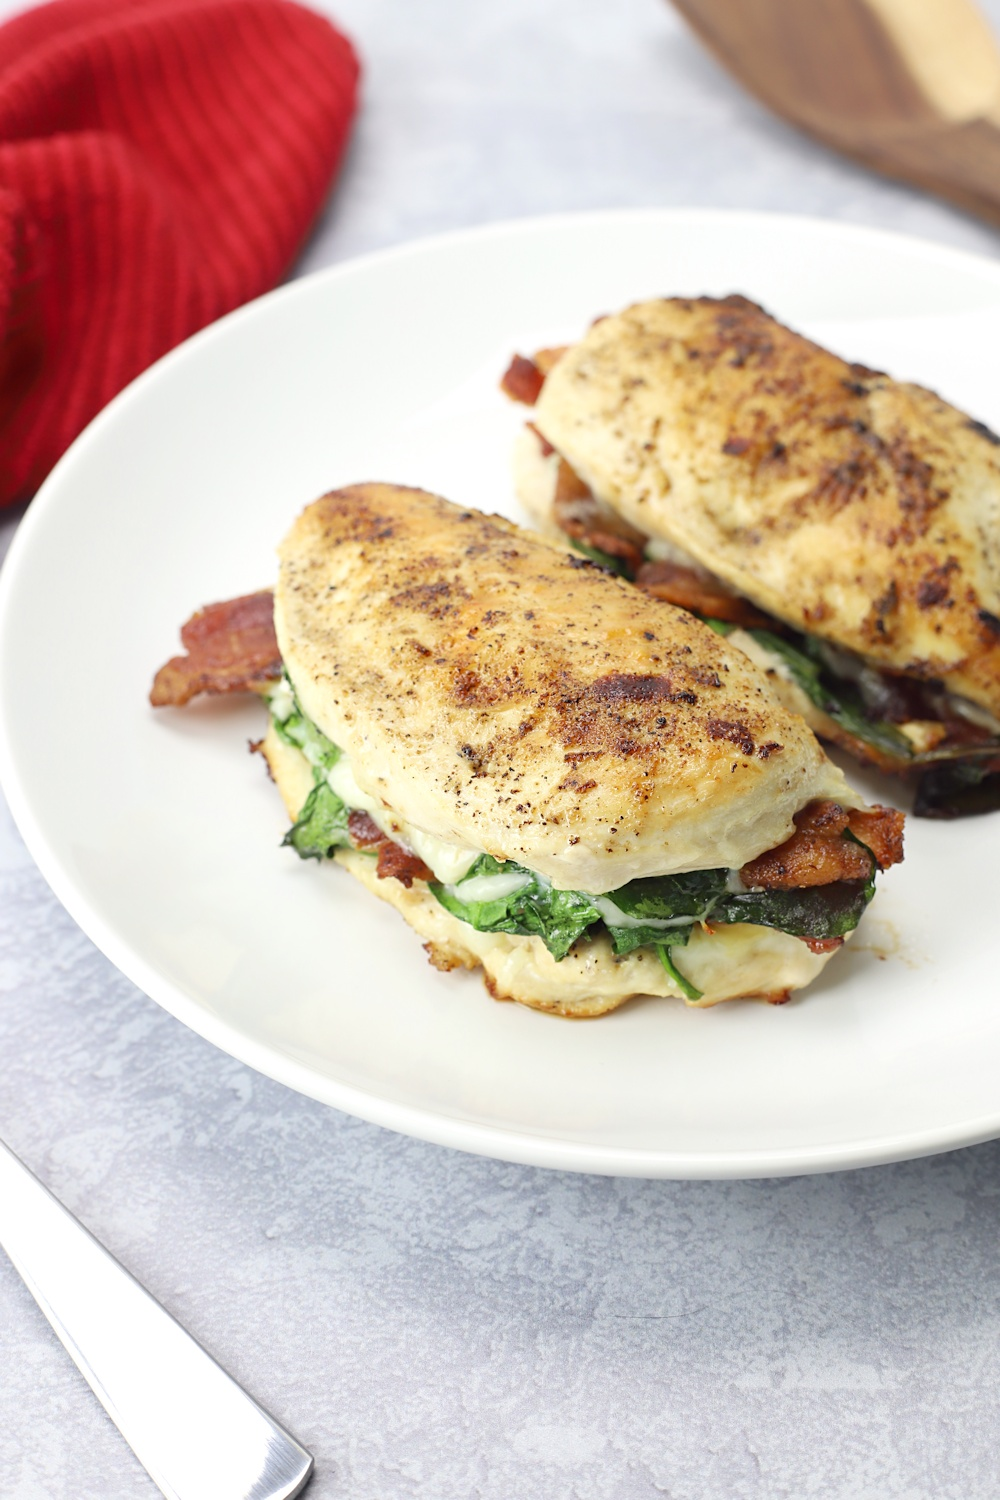 Bacon and spinach stuffed in the middle of chicken breasts, on a white plate.